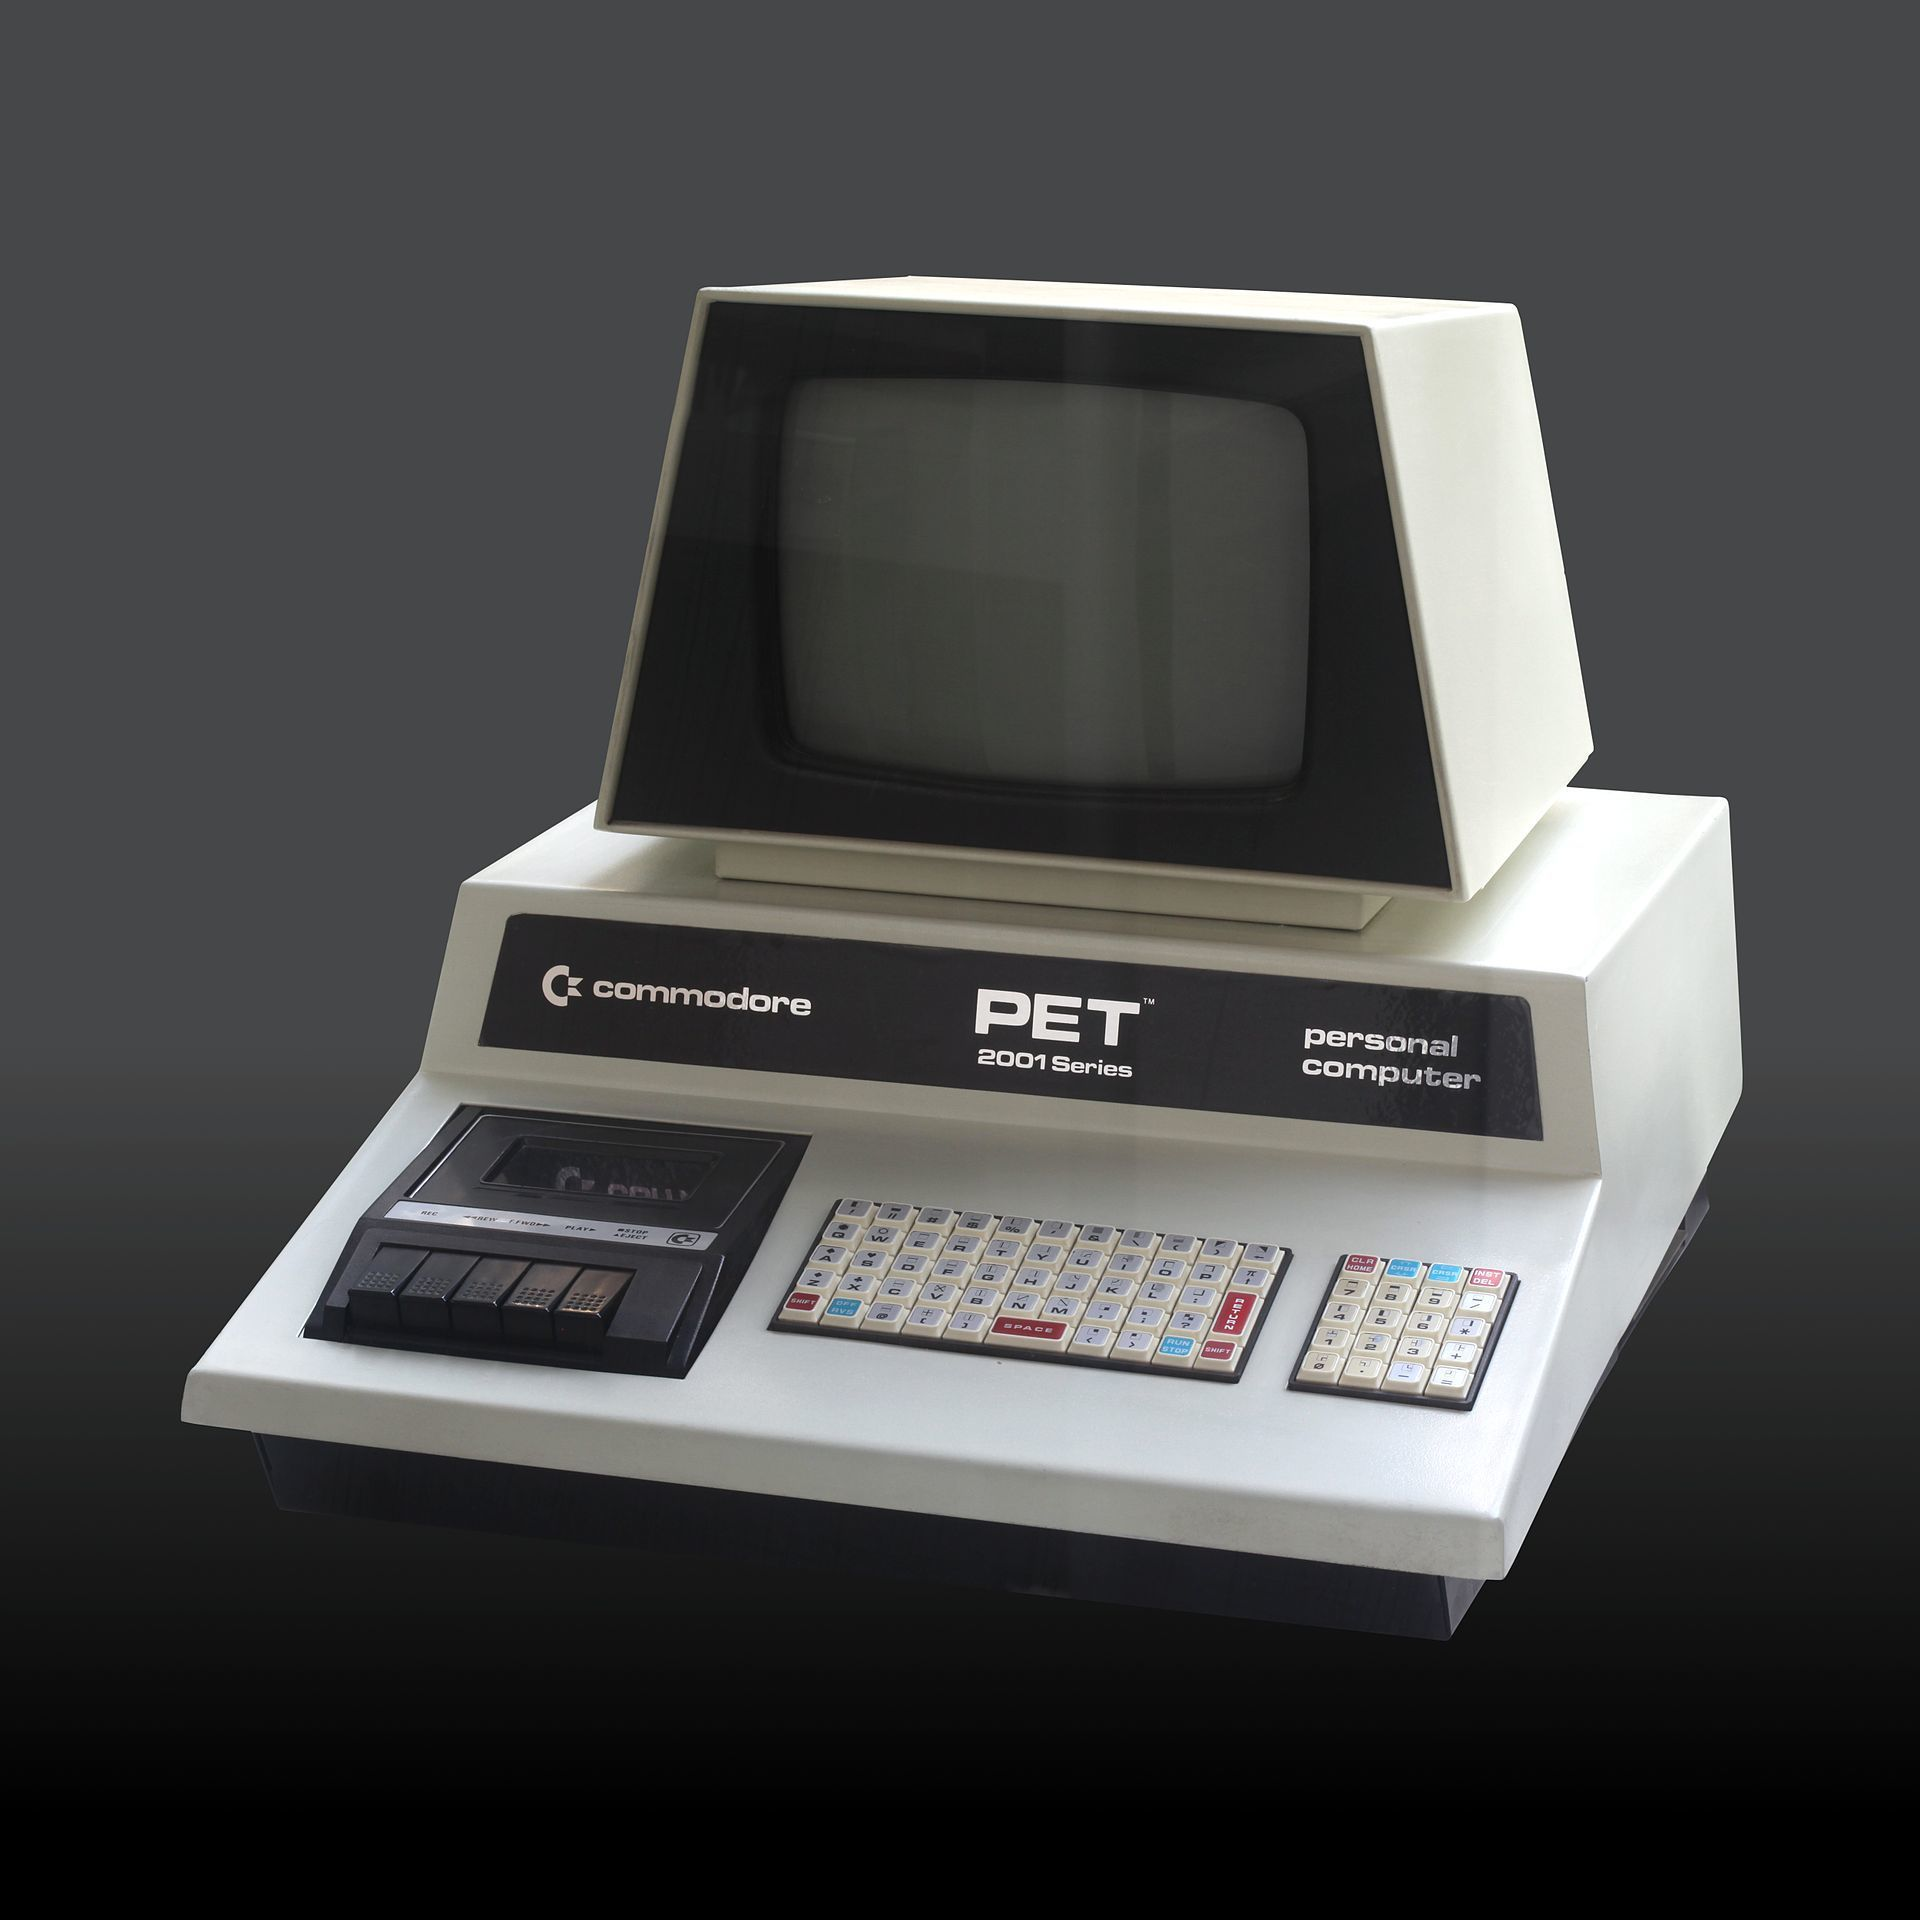 Commodore_2001_Series-IMG_0448b.jpg